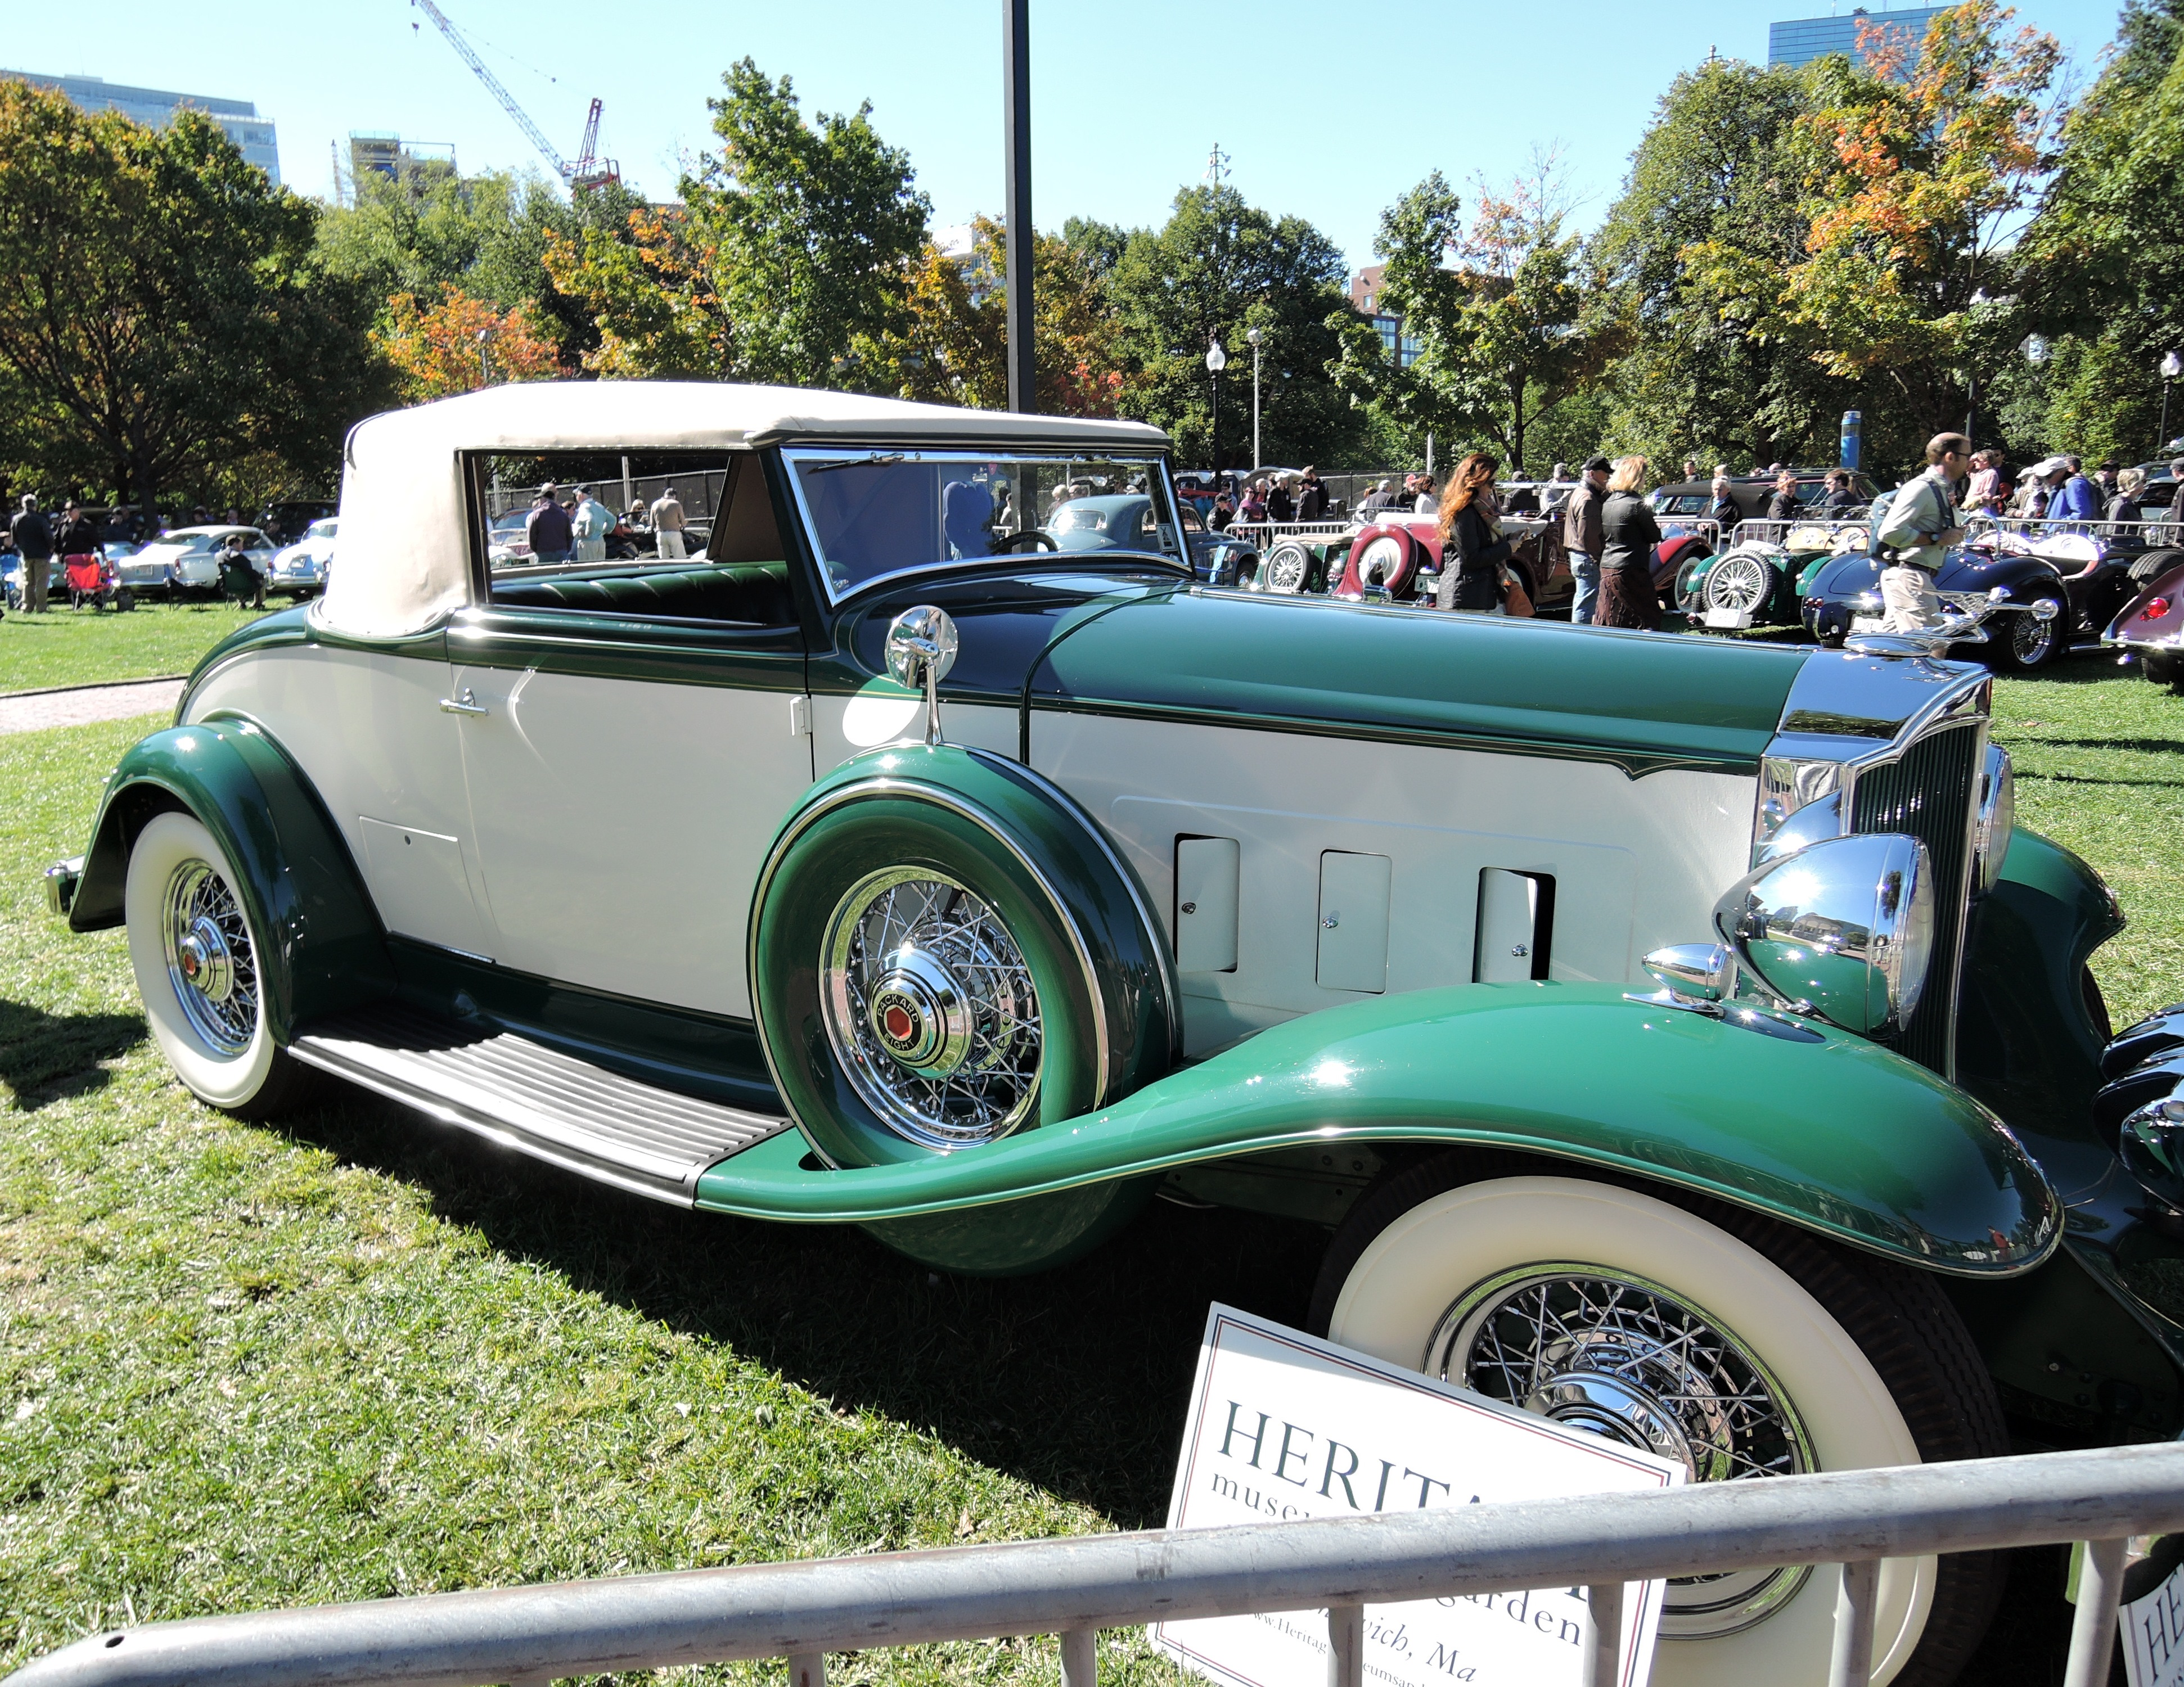 green 1932 Packard 900M Coupe Roadster - The Boston Cup on Boston Common